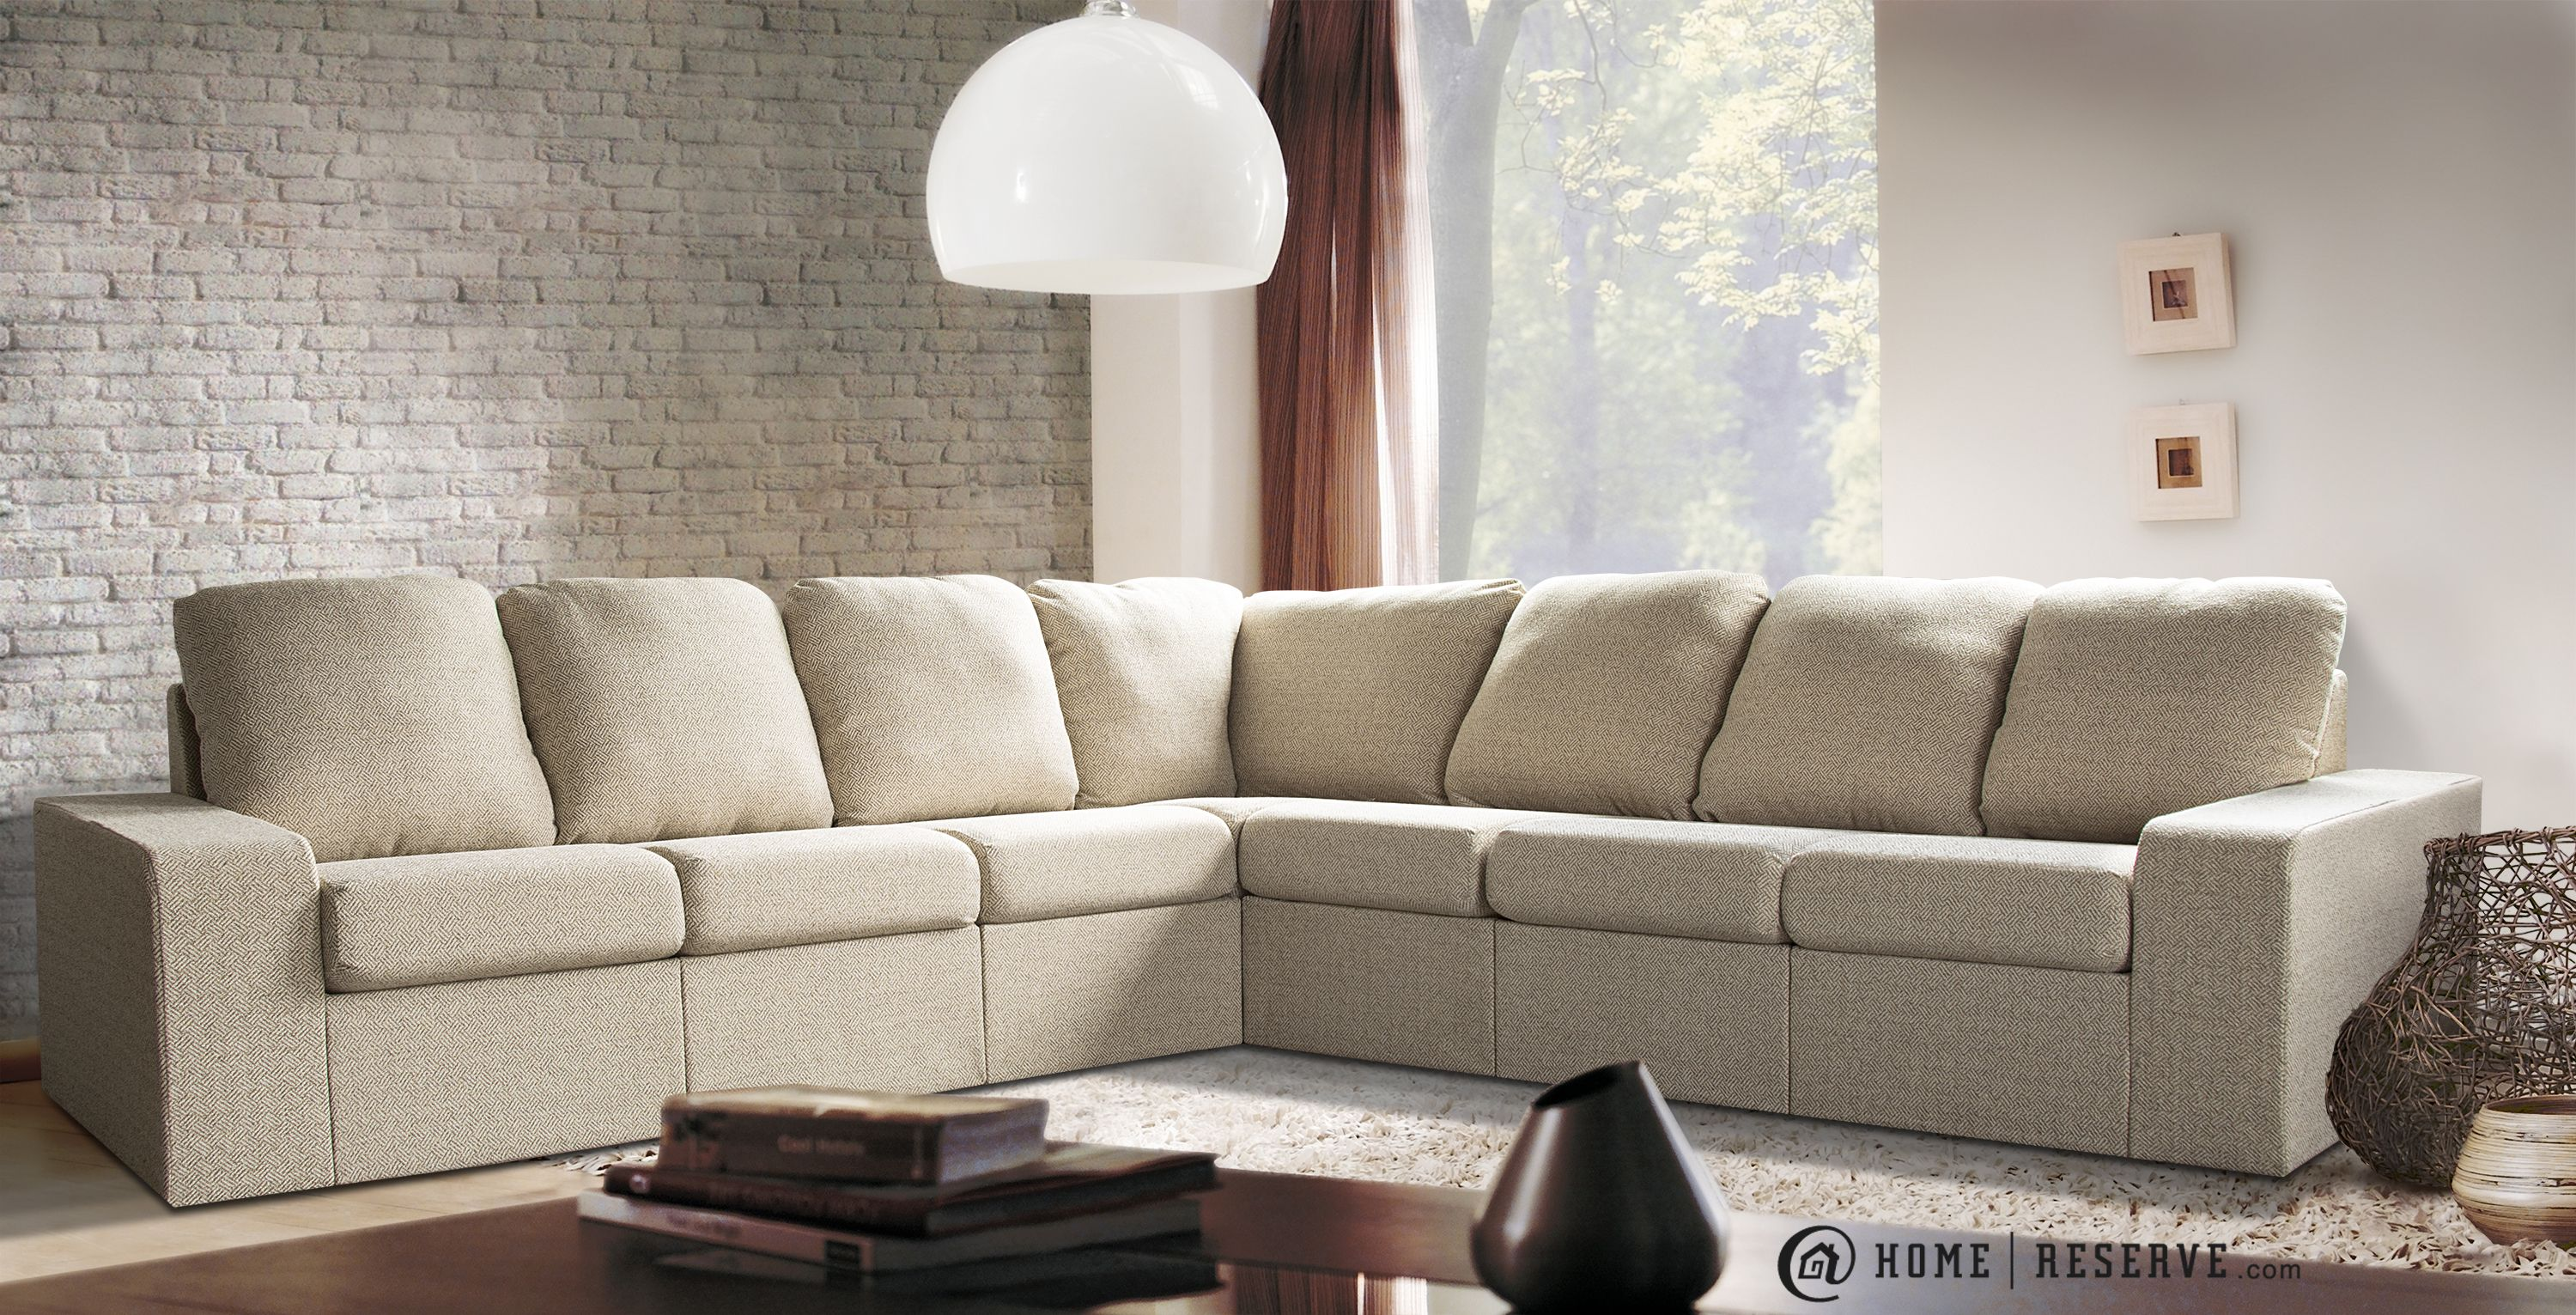 customize your sectional sofa sleepers cheap yoga twine fabric in our jovie style to fit any space